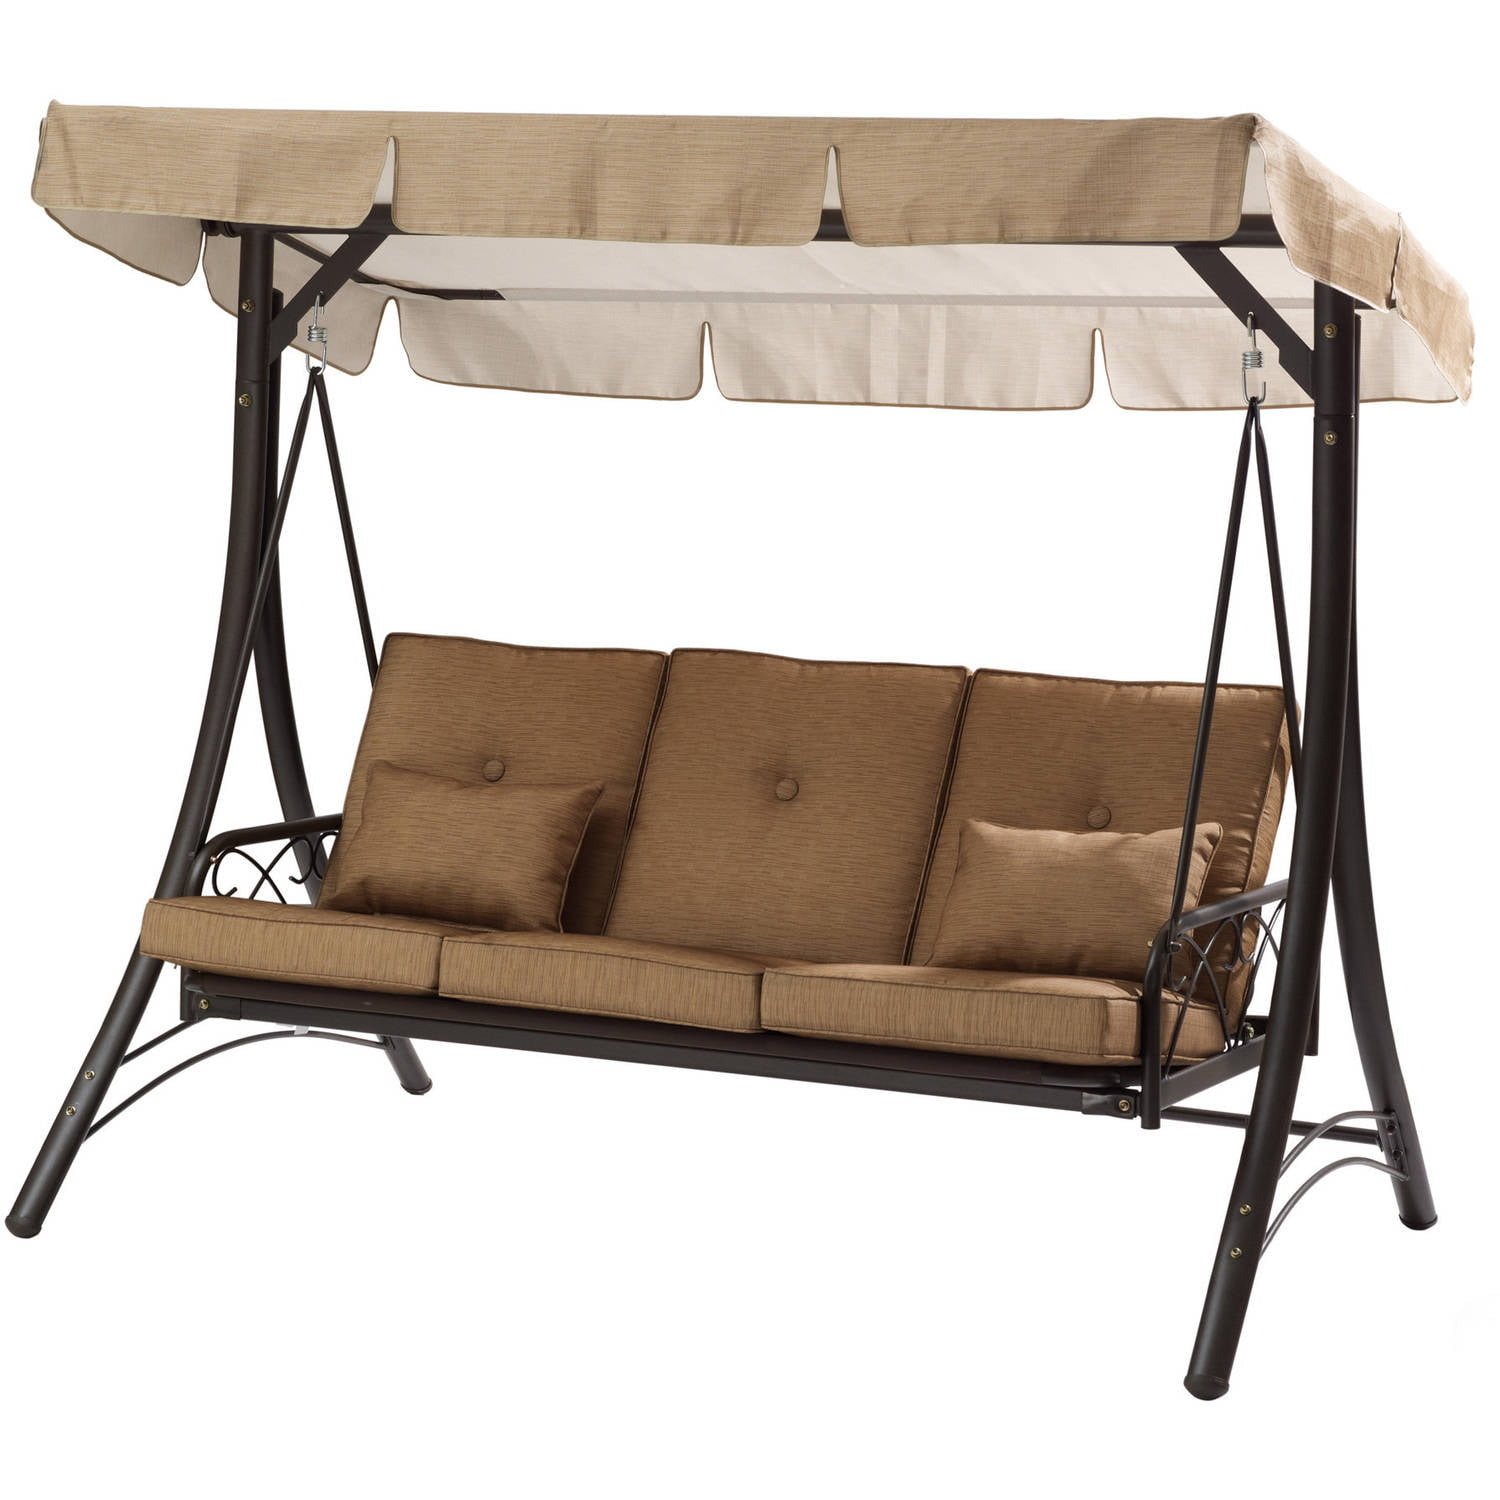 Mainstays Lawson Ridge Converting Outdoor Swing/Hammock, Seats 3    Walmart.com